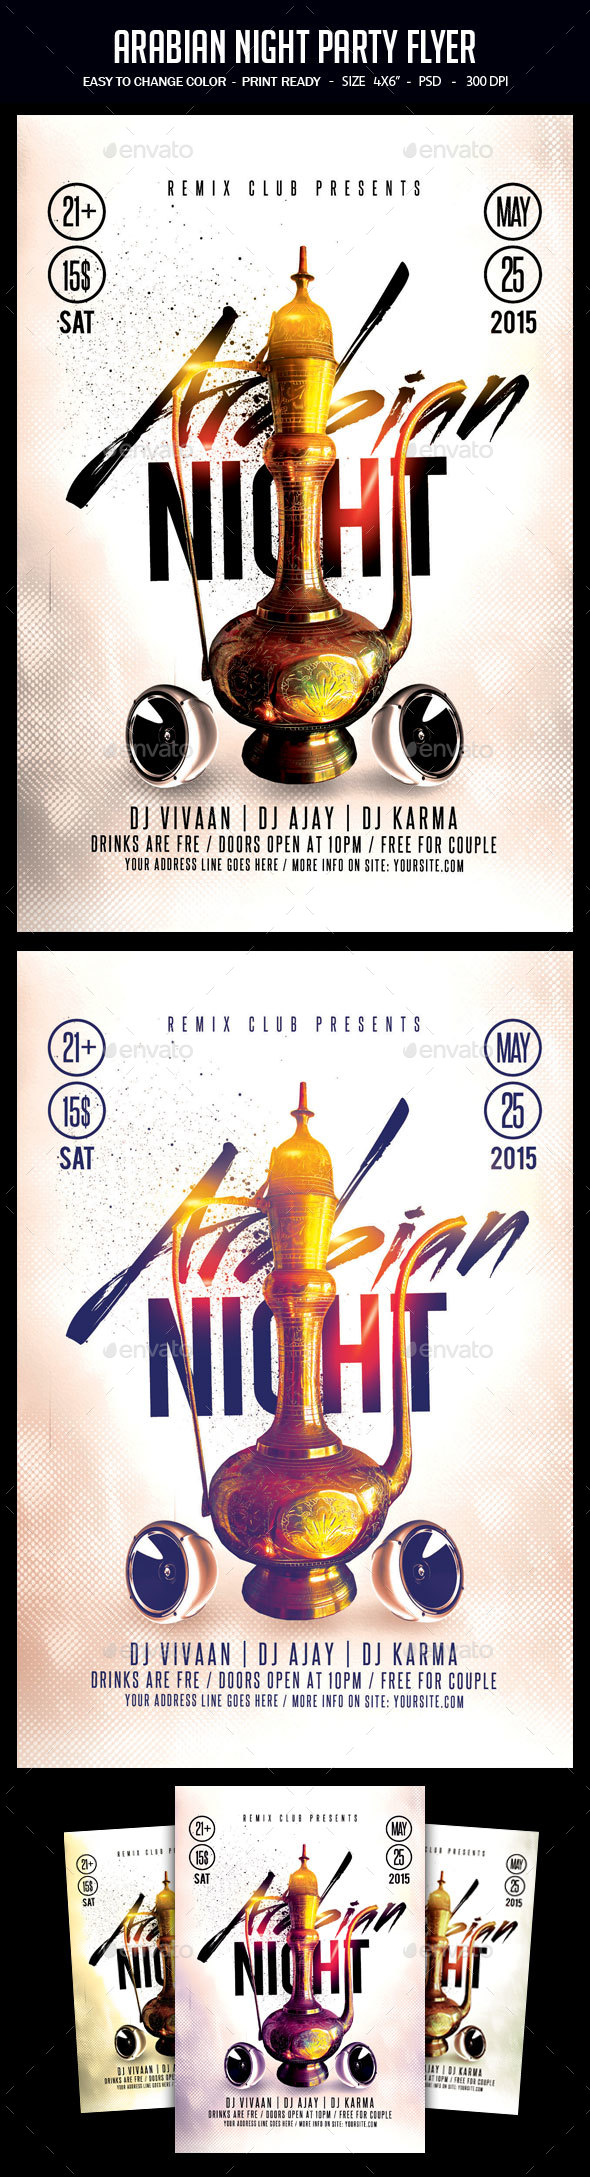 Arabian Night Party Flyer - Clubs & Parties Events